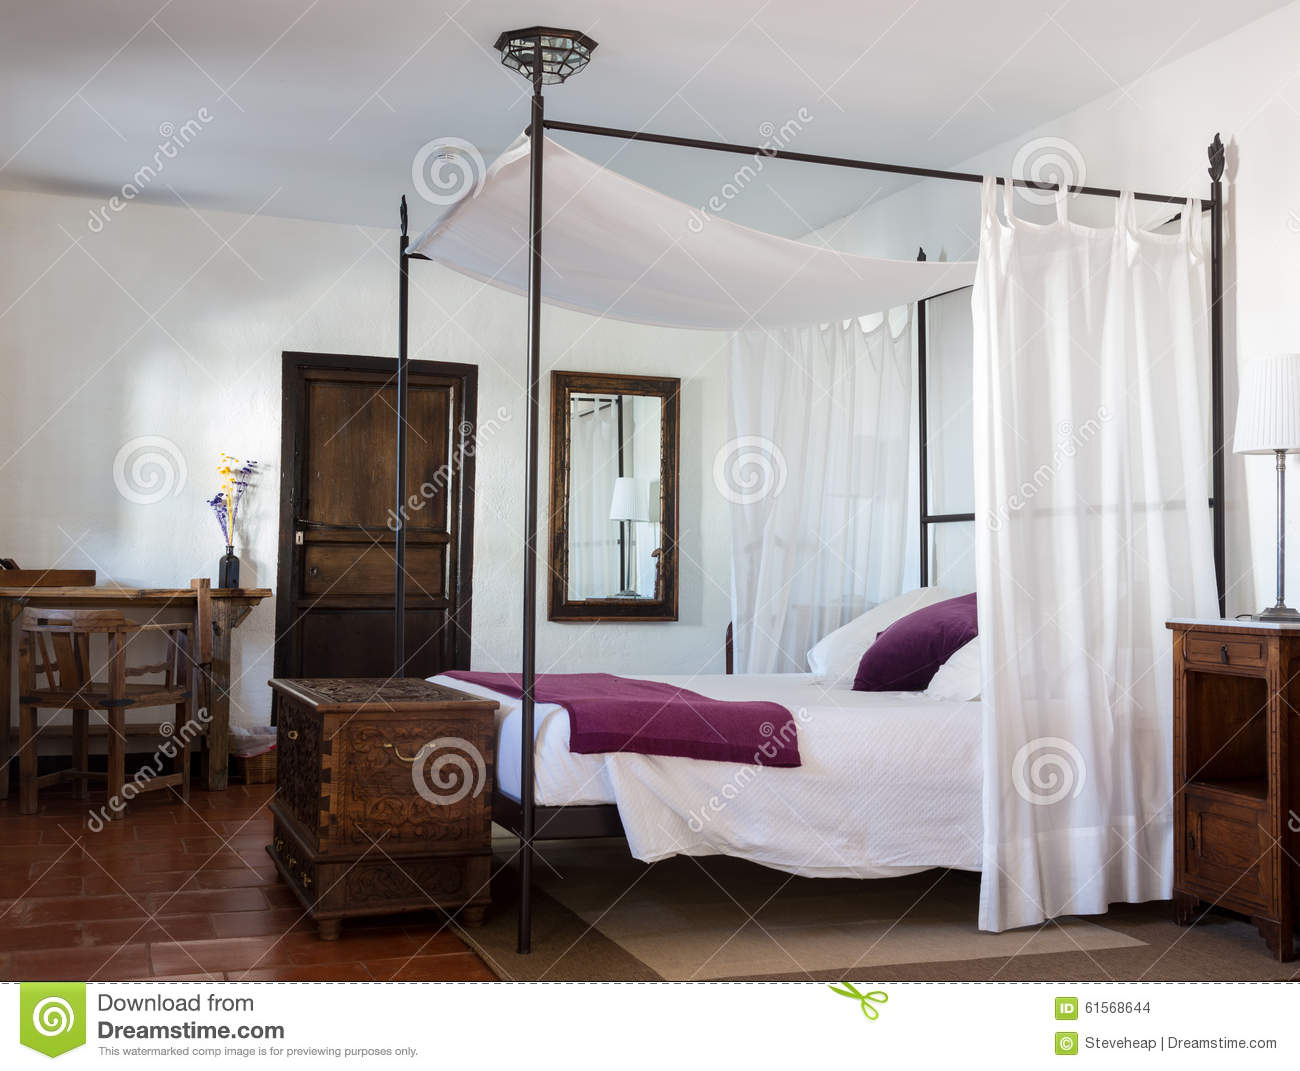 Rustic Bedroom In Luxury Hotel Stock Photo Image Of Hotel Europe 61568644